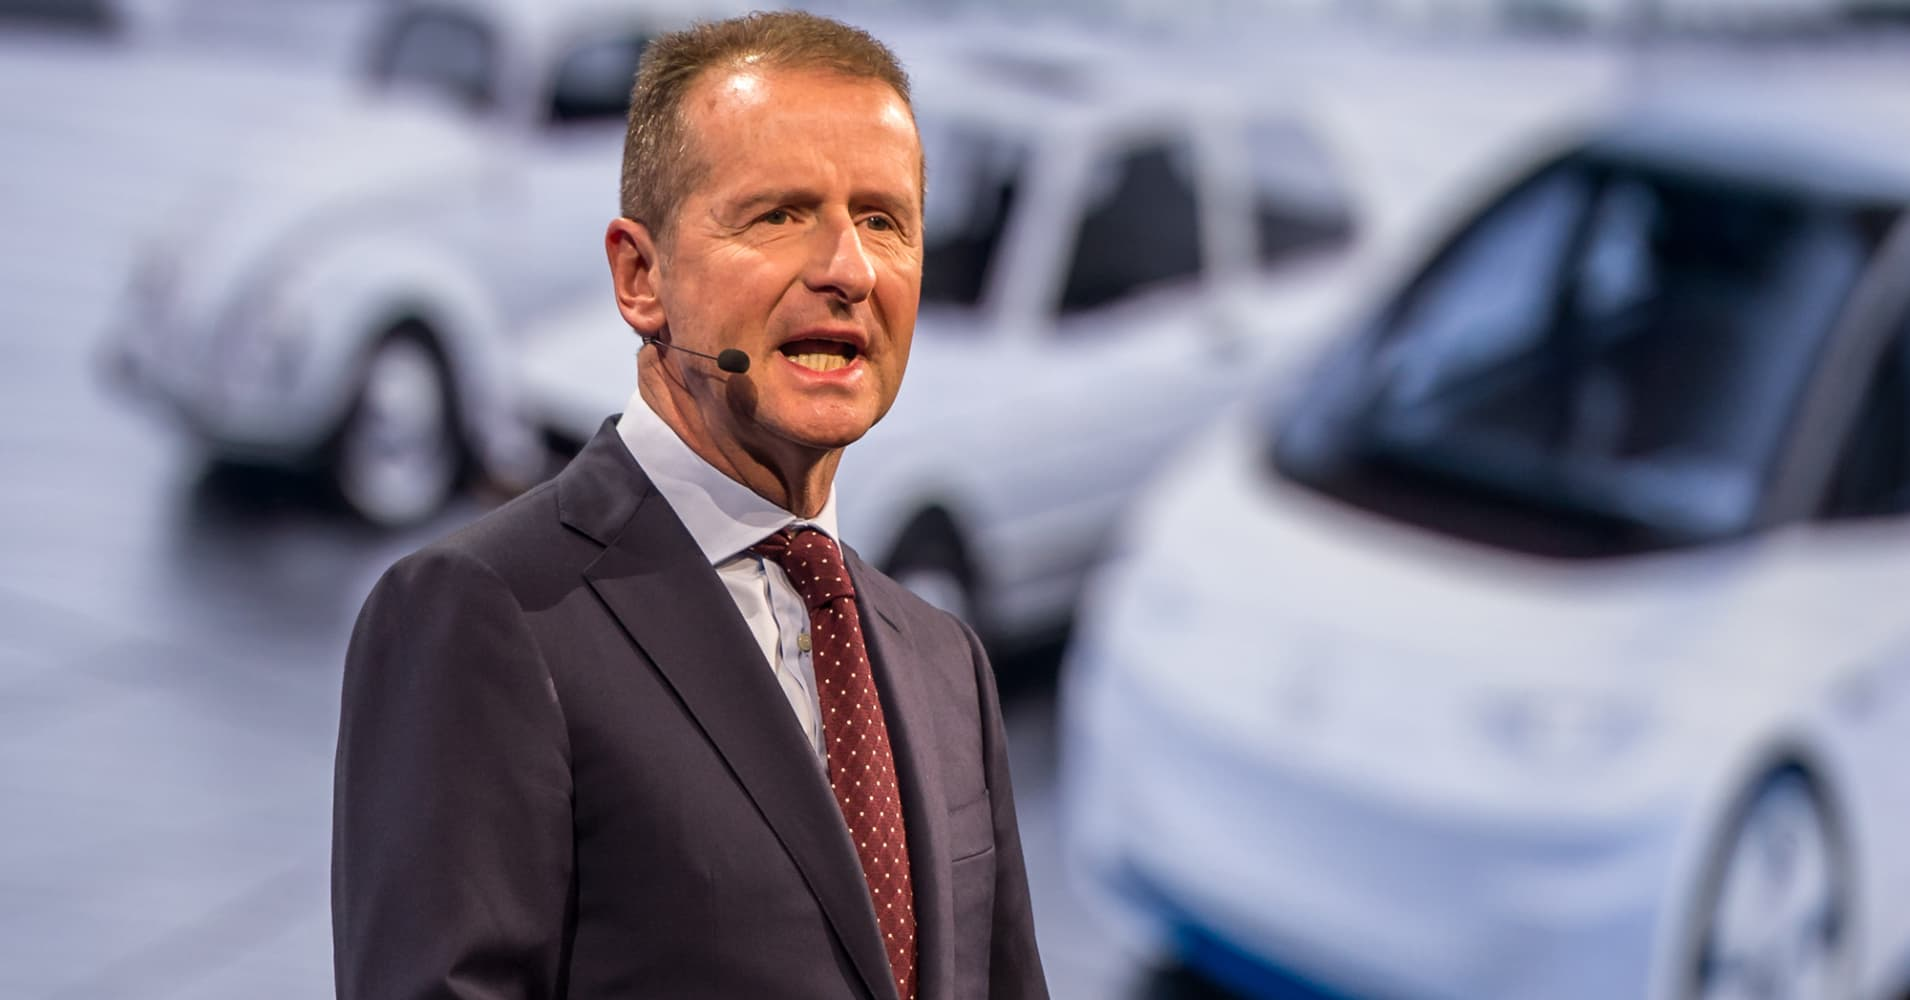 VW CEO says he hopes he's done enough to please Trump and avoid tariffs